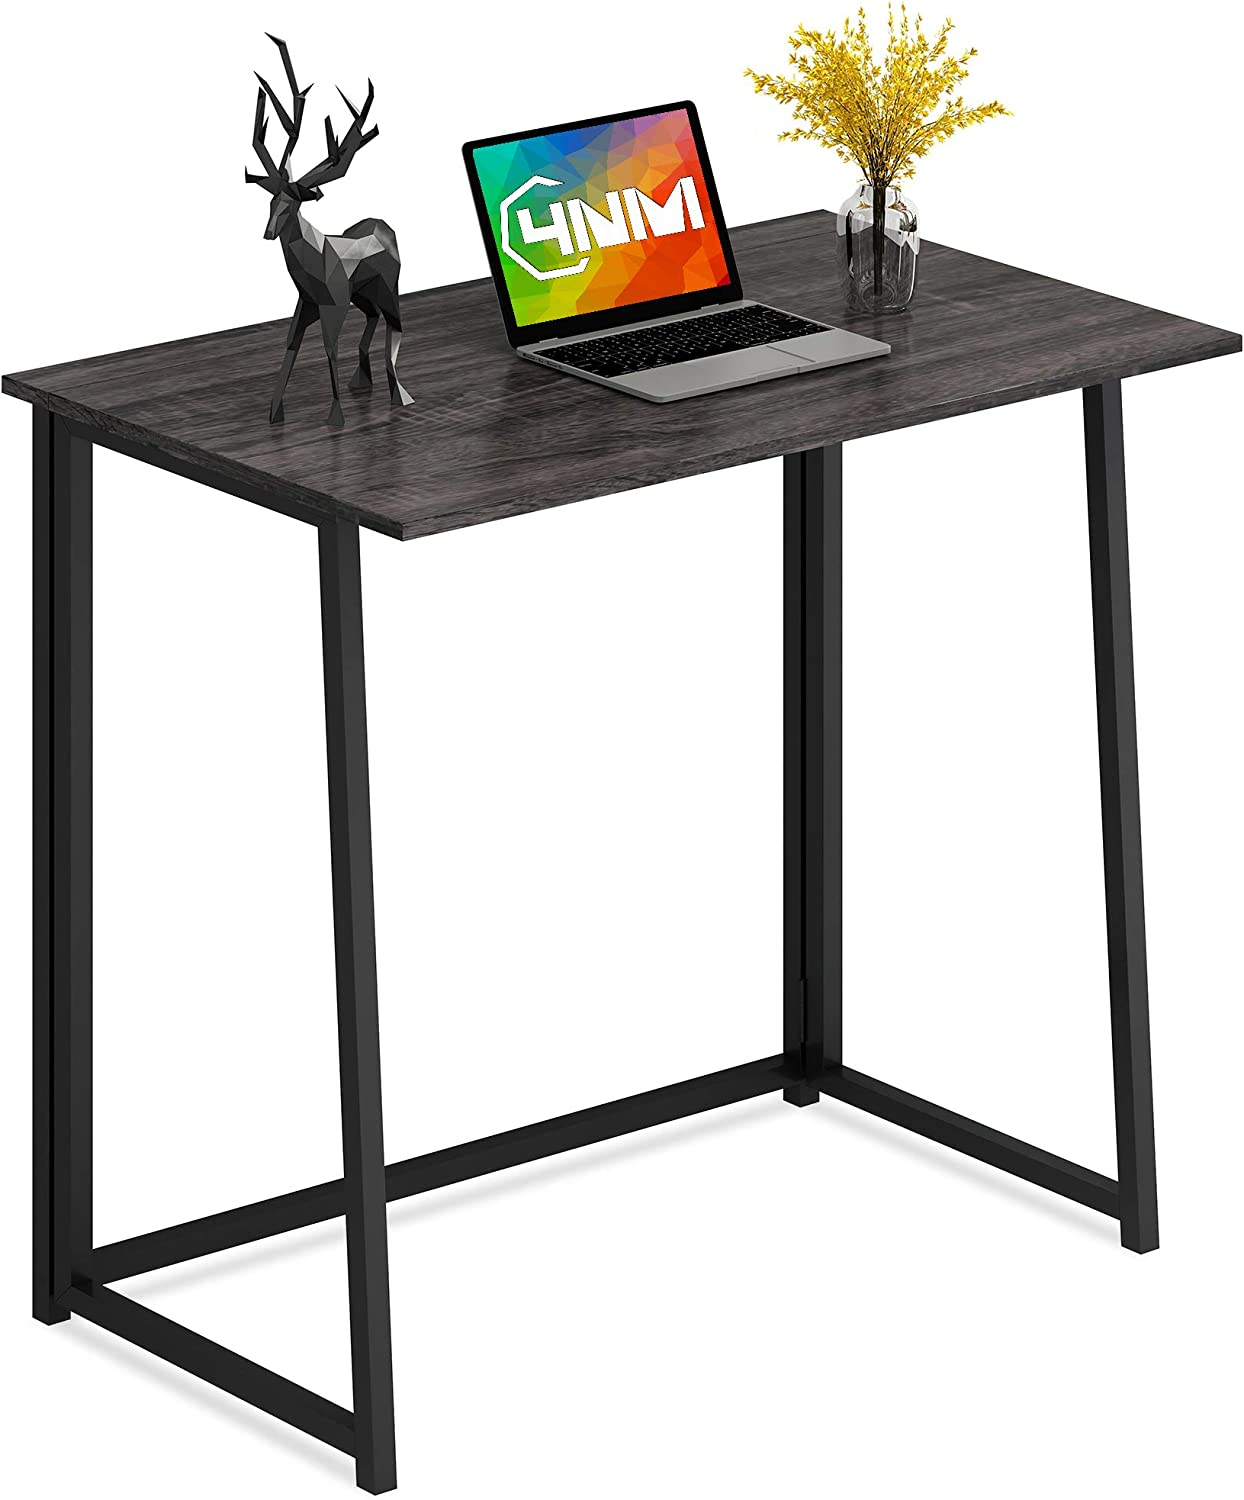 4NM Folding Desk, Small Computer Desk Home Office Desk Foldable Table Workstation for Small Places (Gray and Black)